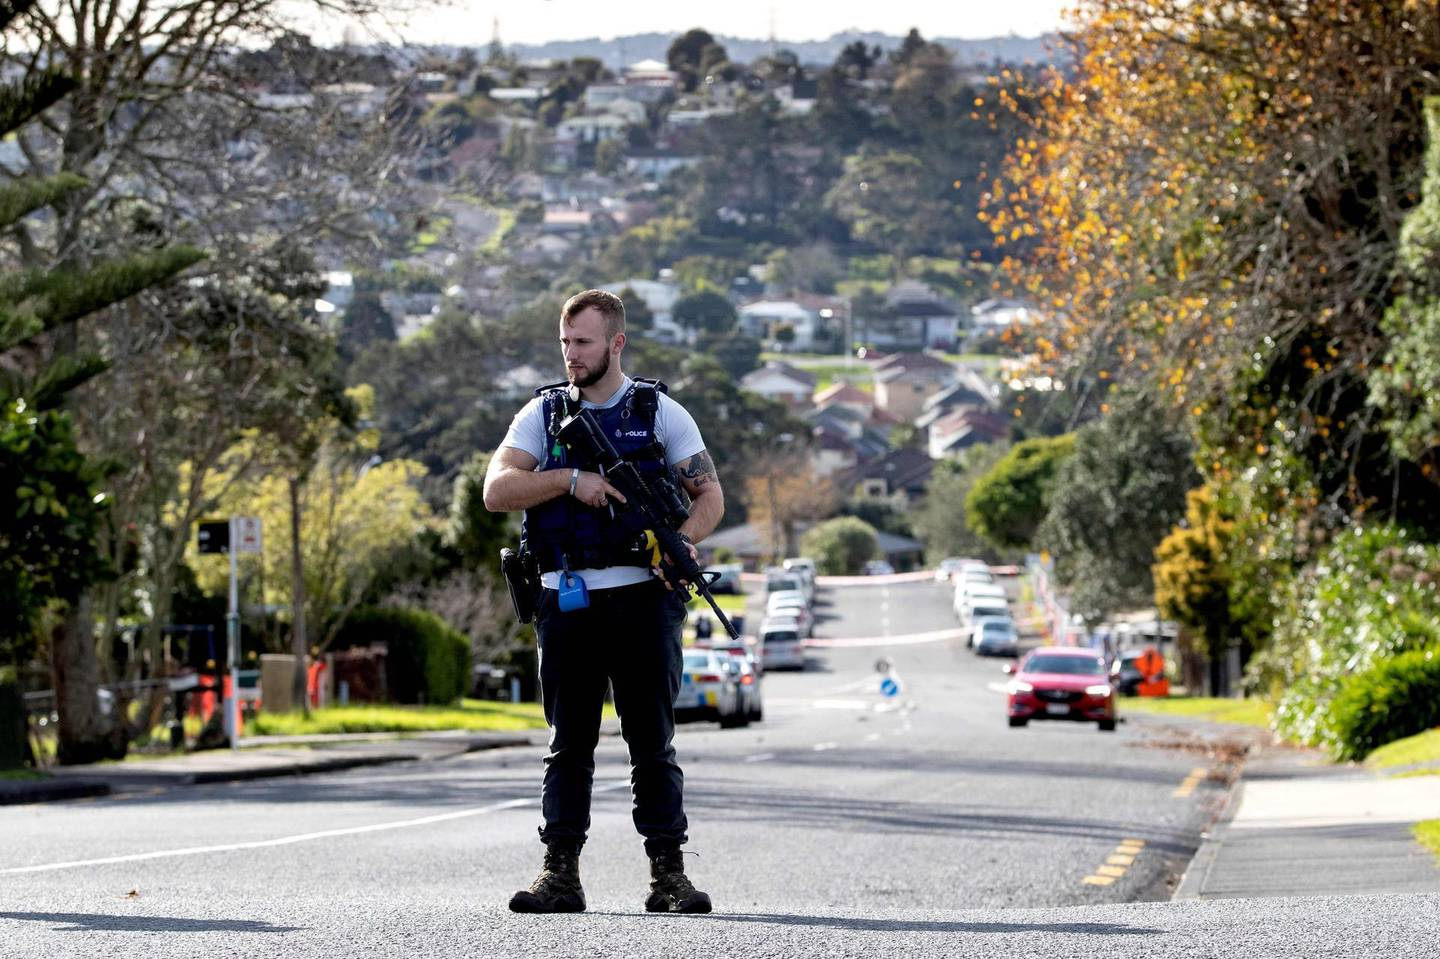 """A police officer cordons off an area after a shooting incident in a residential neighbourhood in Auckland on June 19, 2020. An unarmed New Zealand police officer was shot dead on an Auckland street on June 19 in a rare fatal attack that Prime Minister Jacinda Ardern described as """"devastating"""". / AFP / GREG BOWKER"""